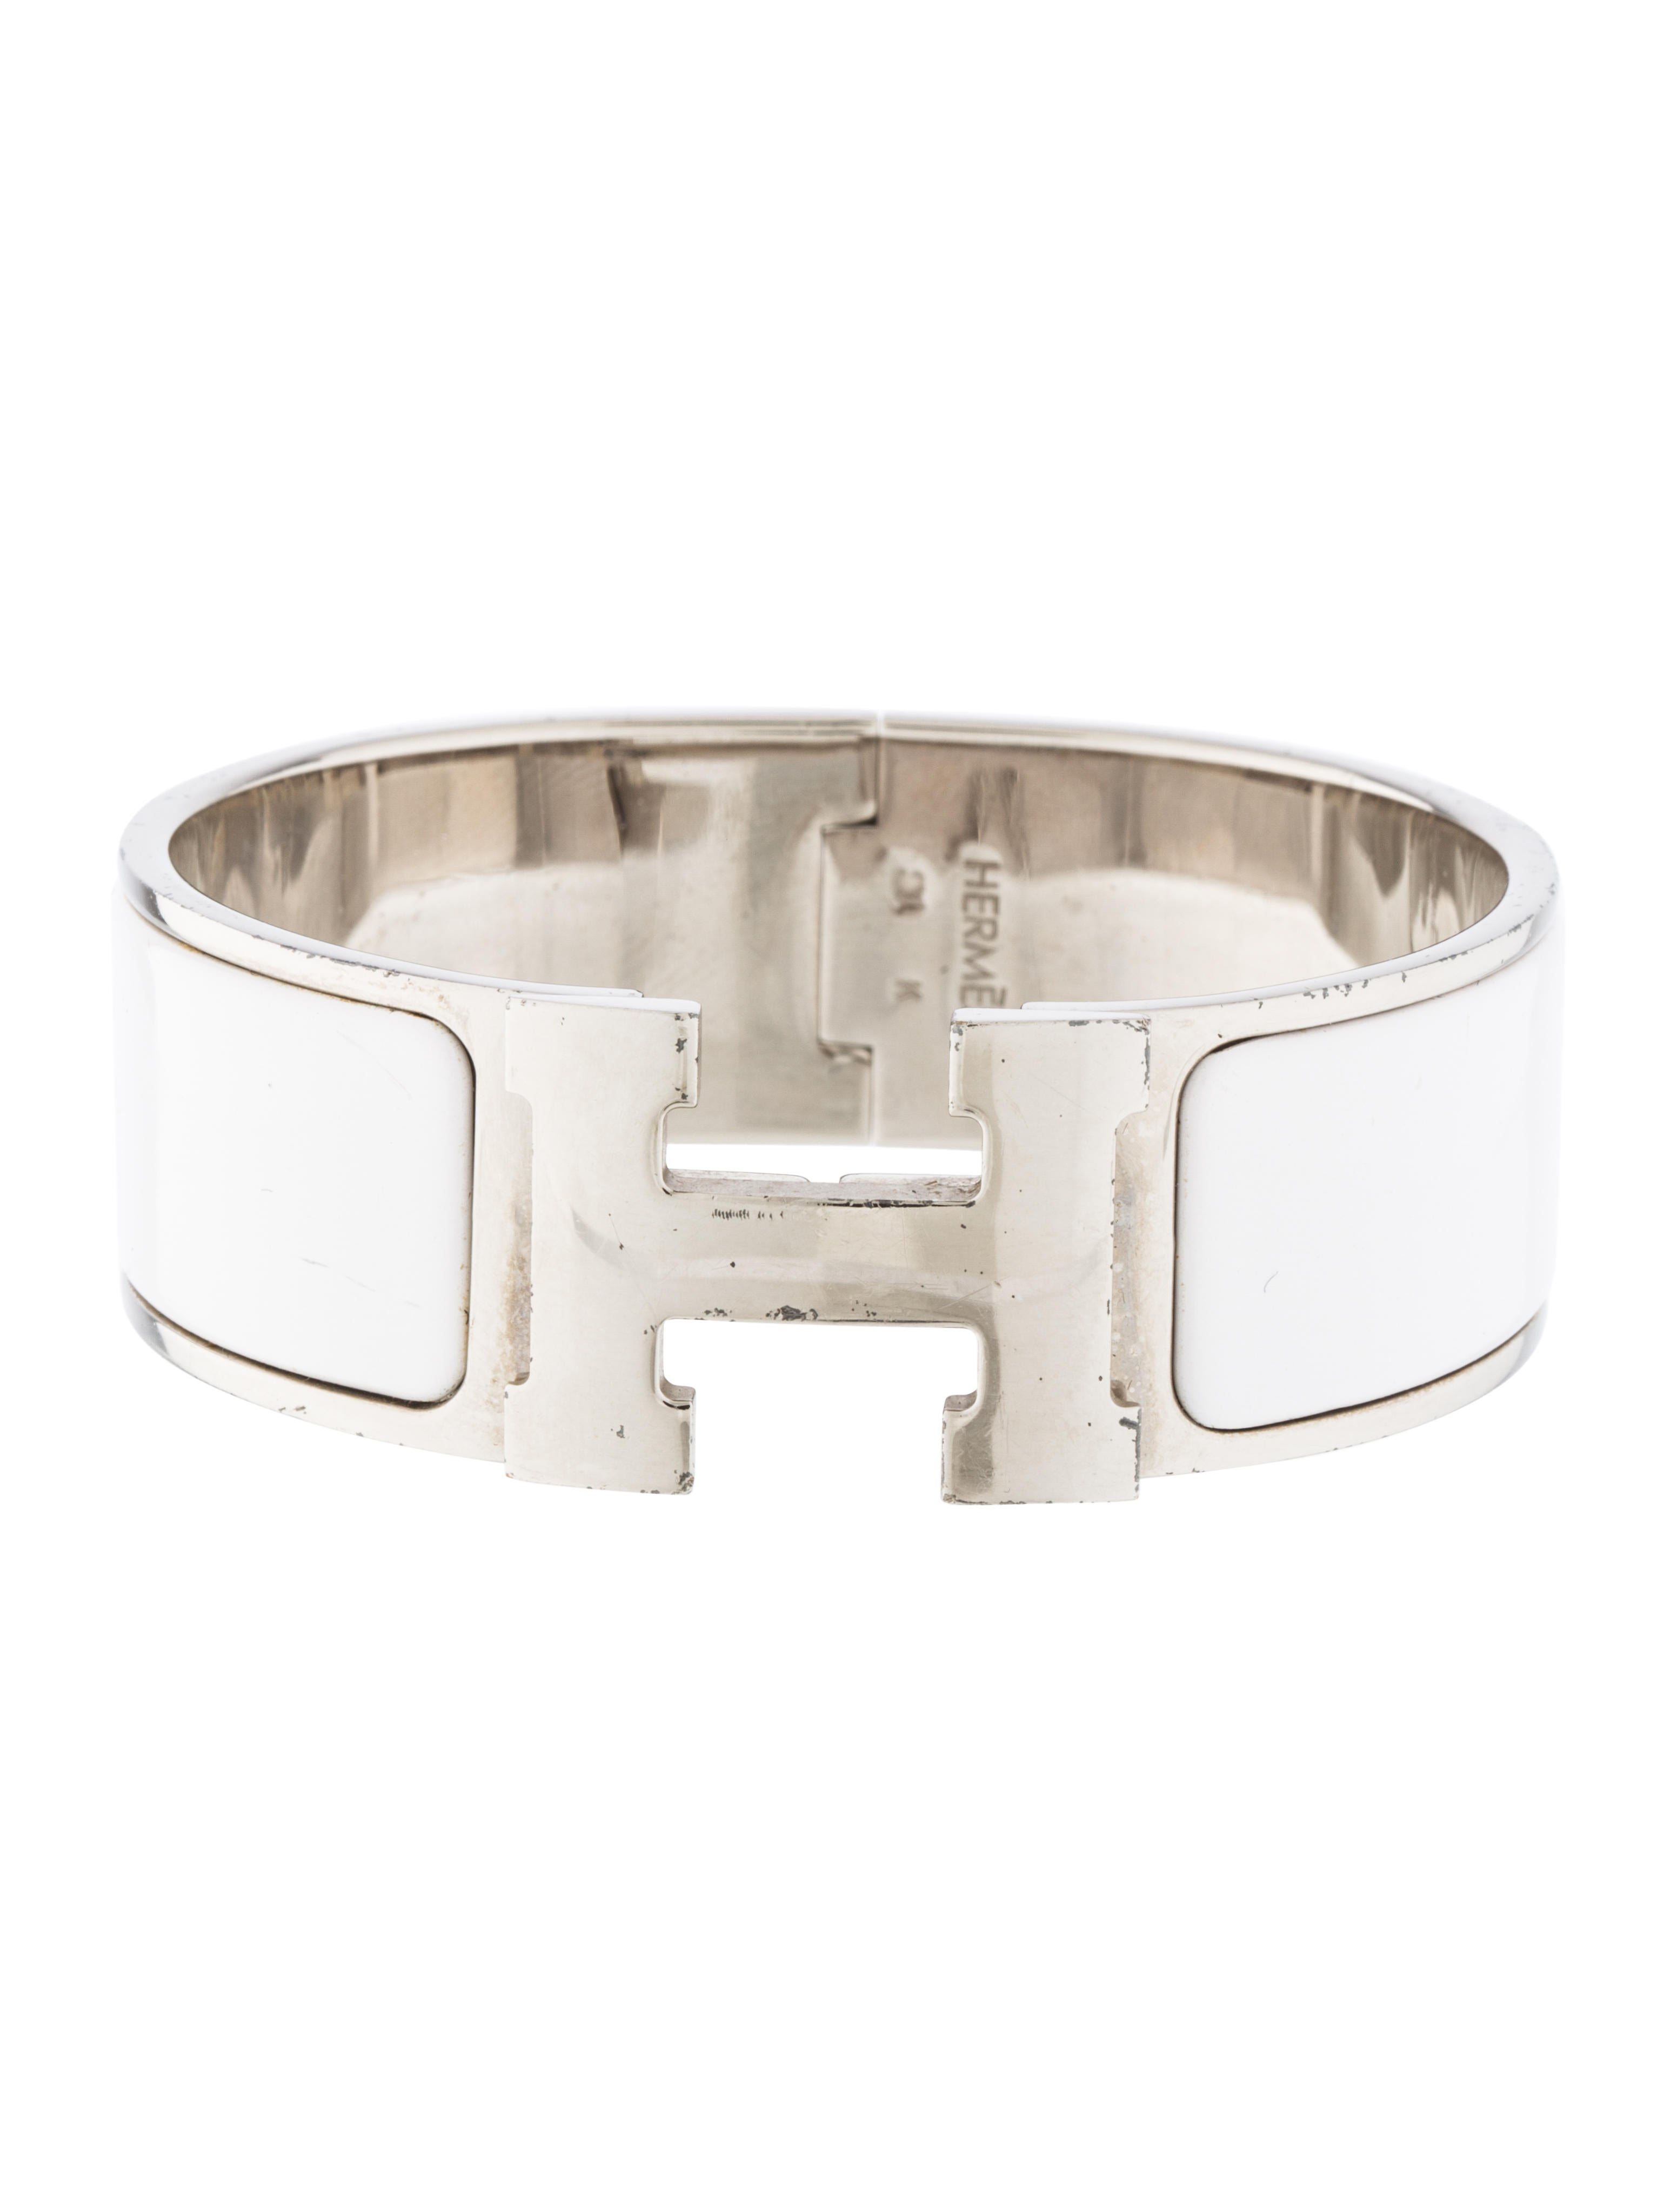 herm 232 s wide clic clac h bracelet bracelets her94258 the realreal